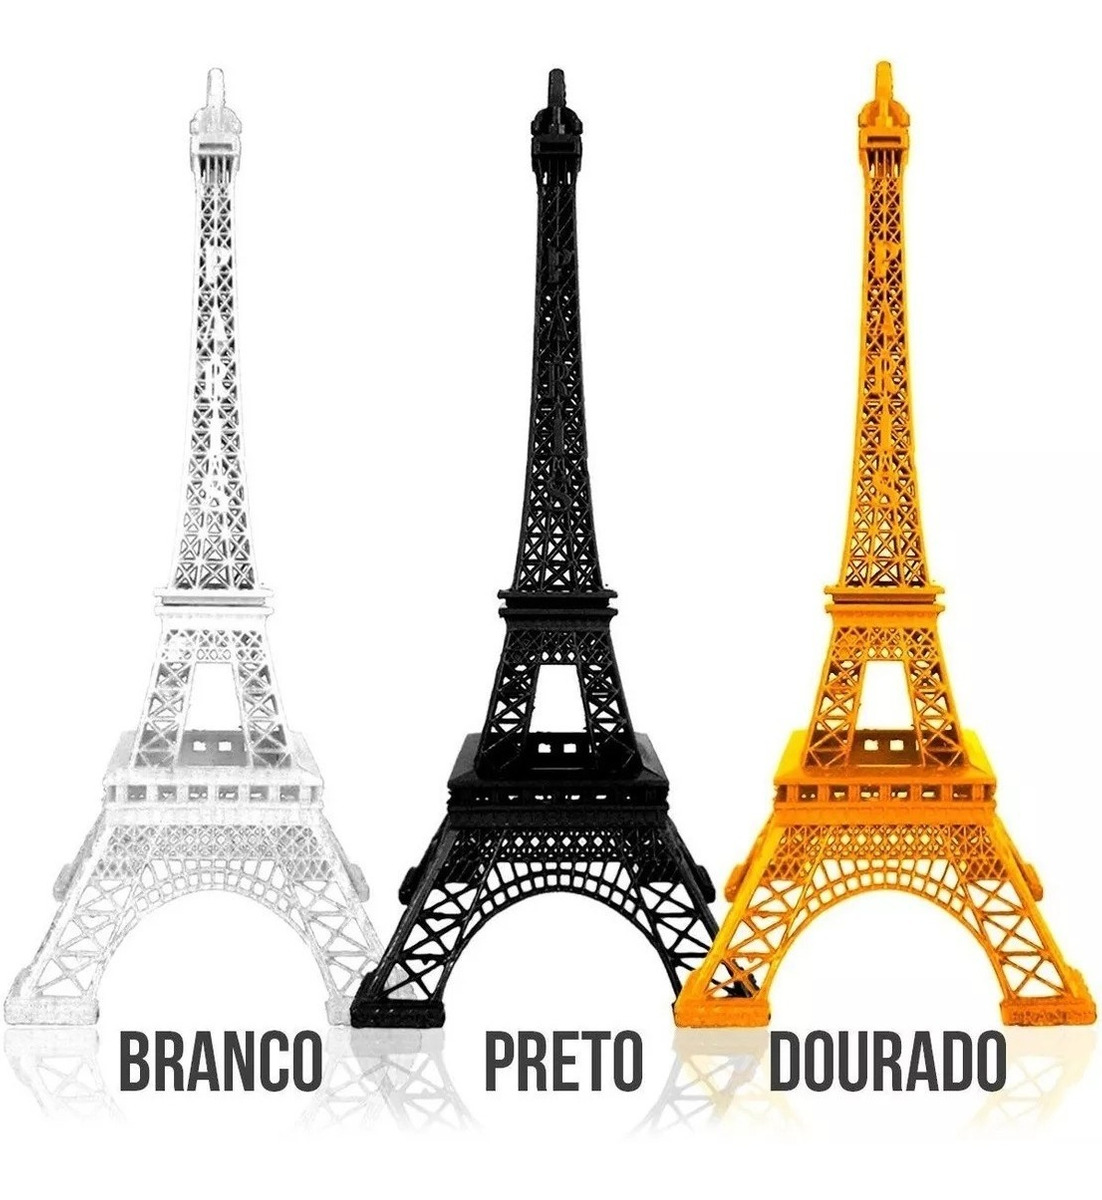 3 Torre Eiffel Paris Decorativa Metal 18 Cm Colorida 6 Cores R